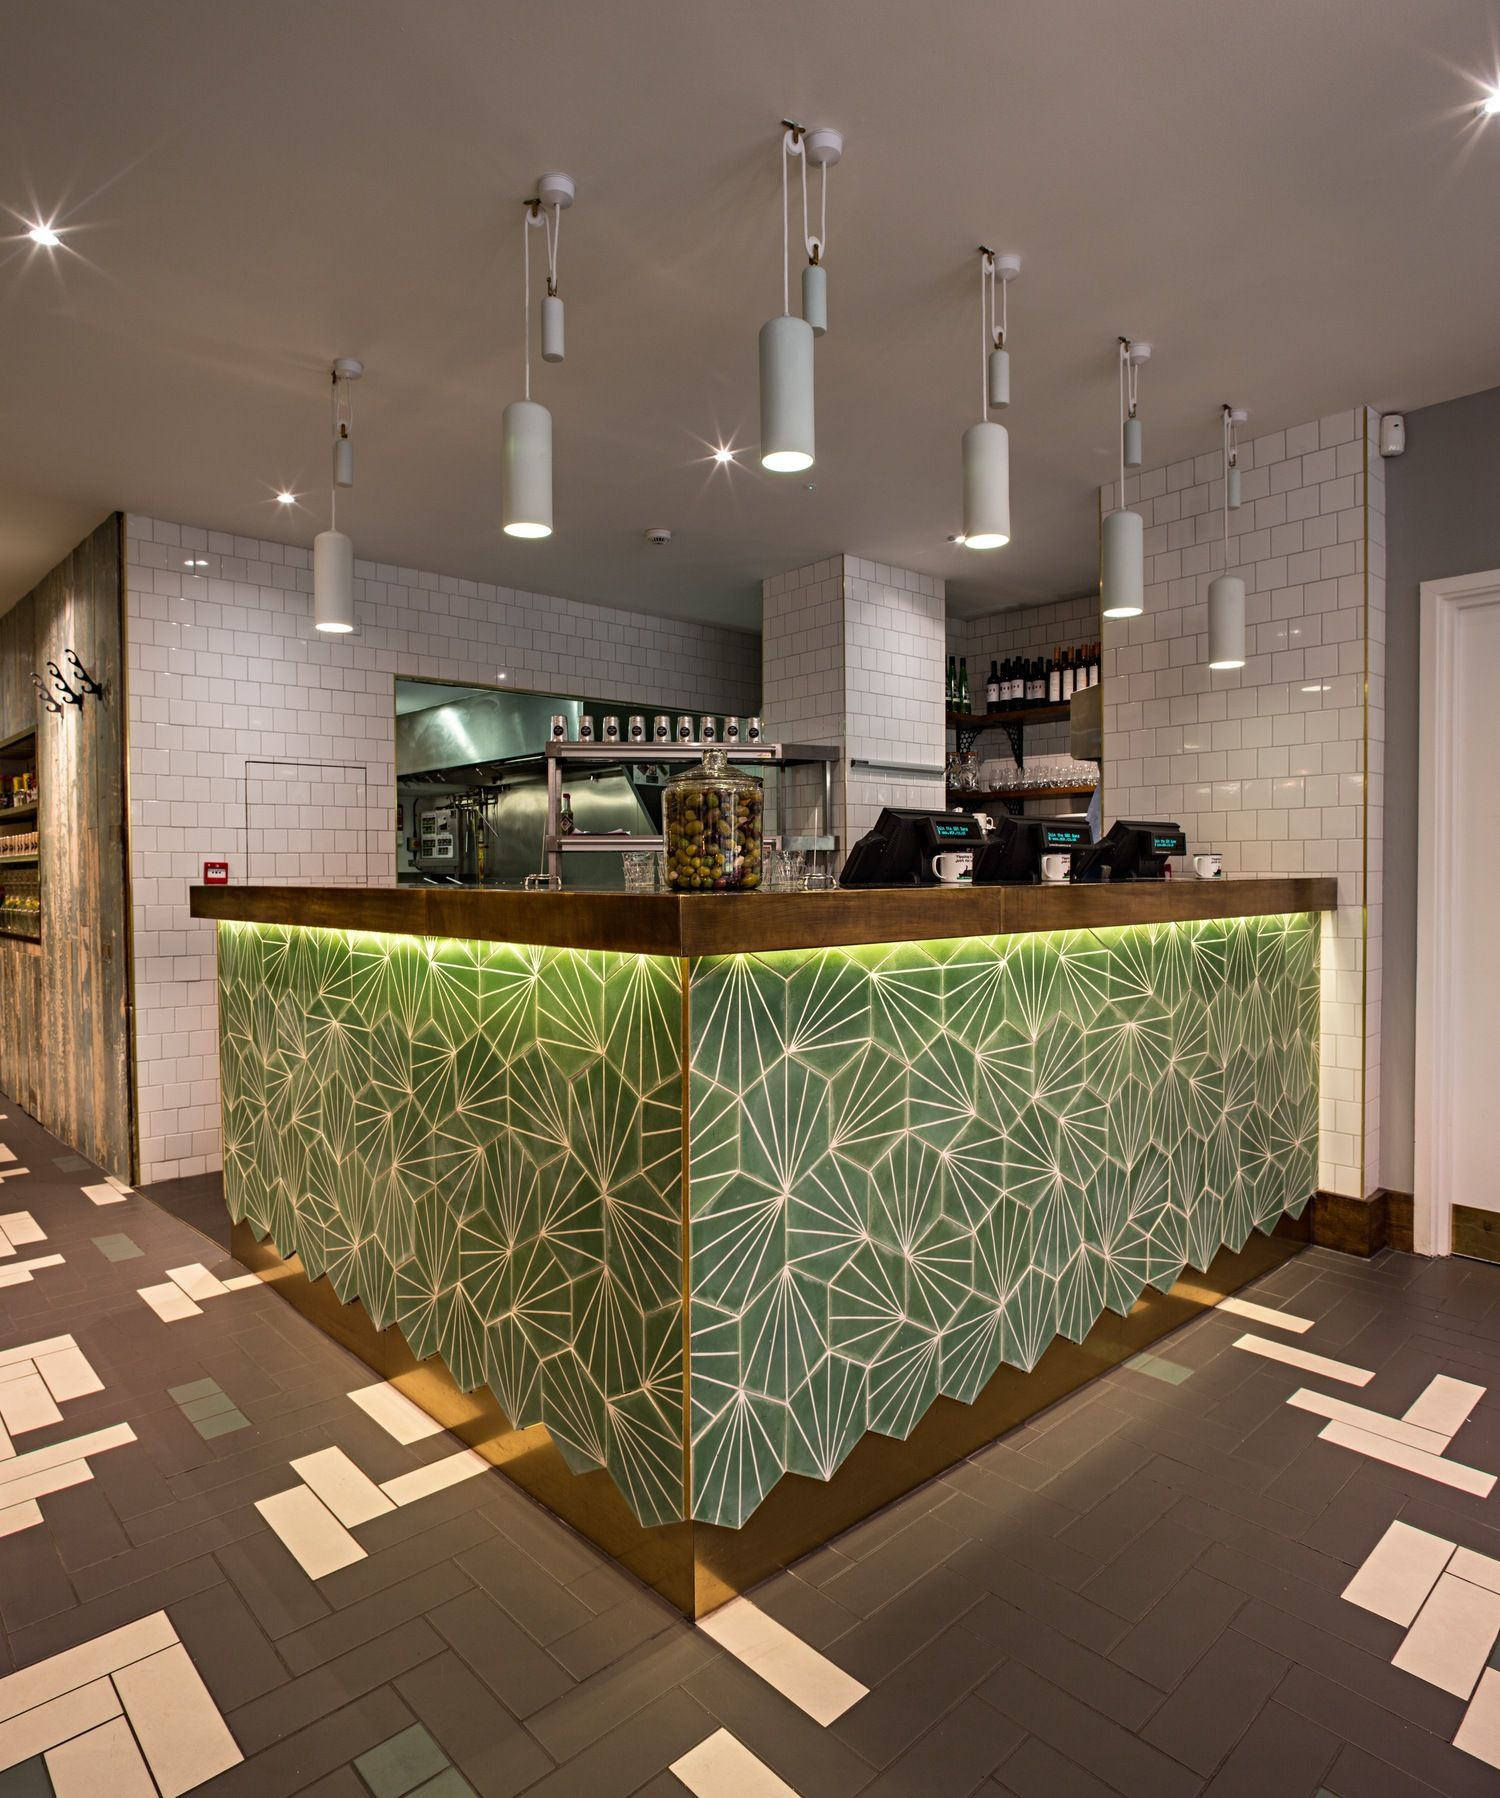 Gourmet Burger Kitchen Covent Garden Restaurant Gbk Covent Garden Maiden Lane London Uk By Moreno